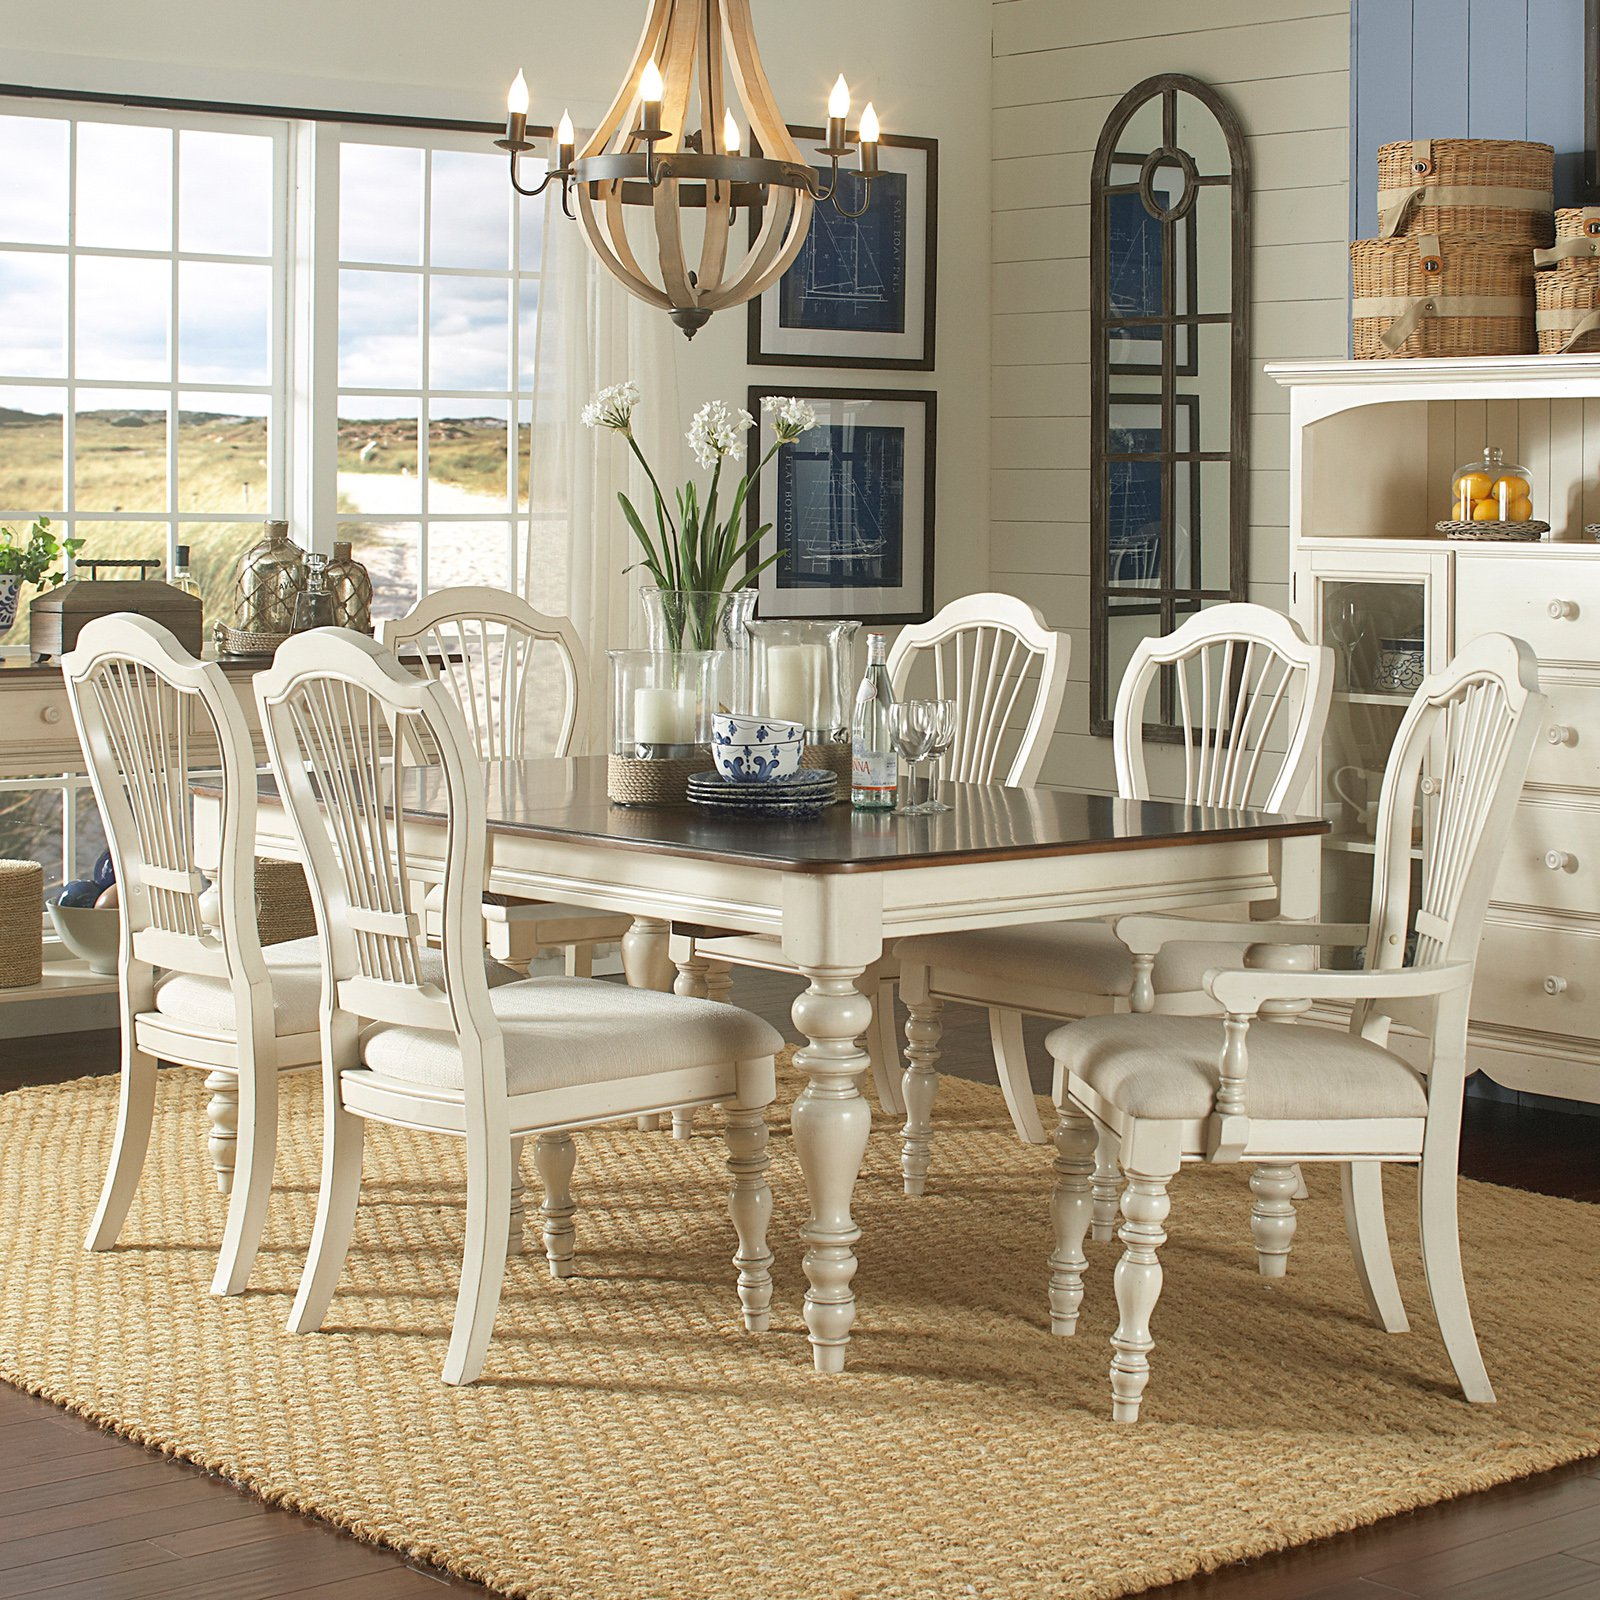 Hillsdale Furniture Pine Island 7-Piece Dining Set, with Wheat Back Chairs